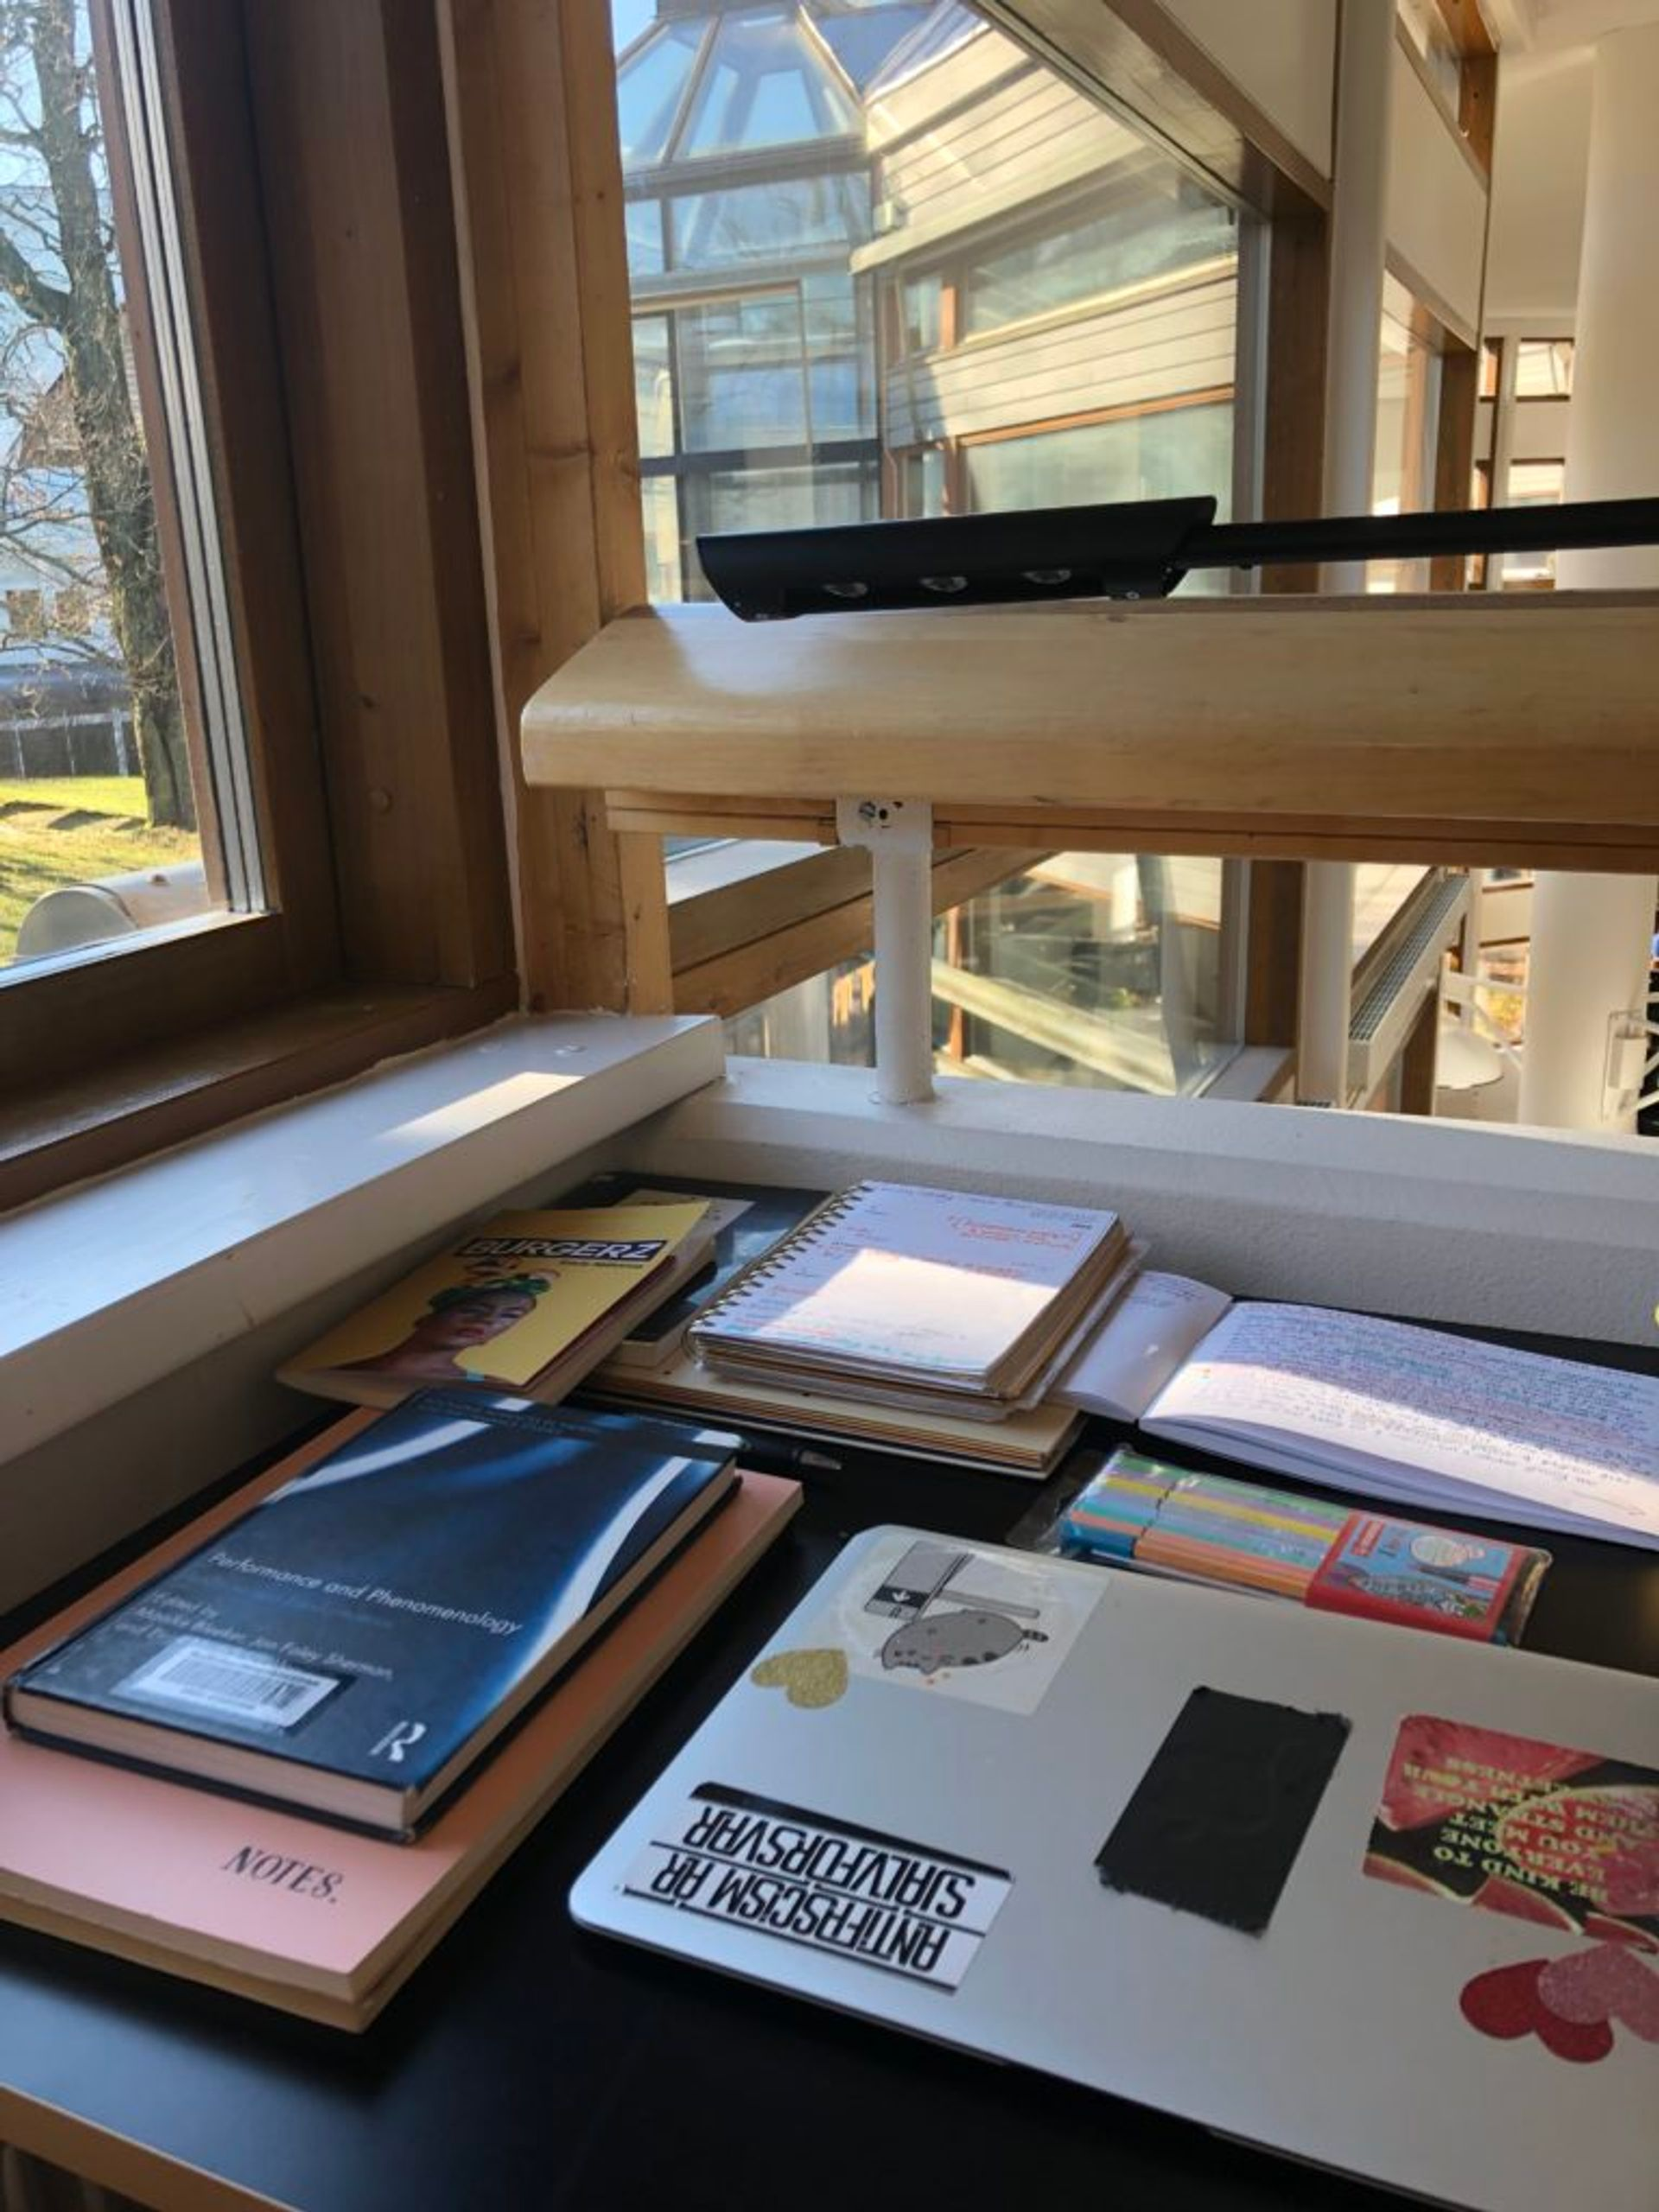 Several library books, notebooks and a laptop on a desk in the Stockholm University library.